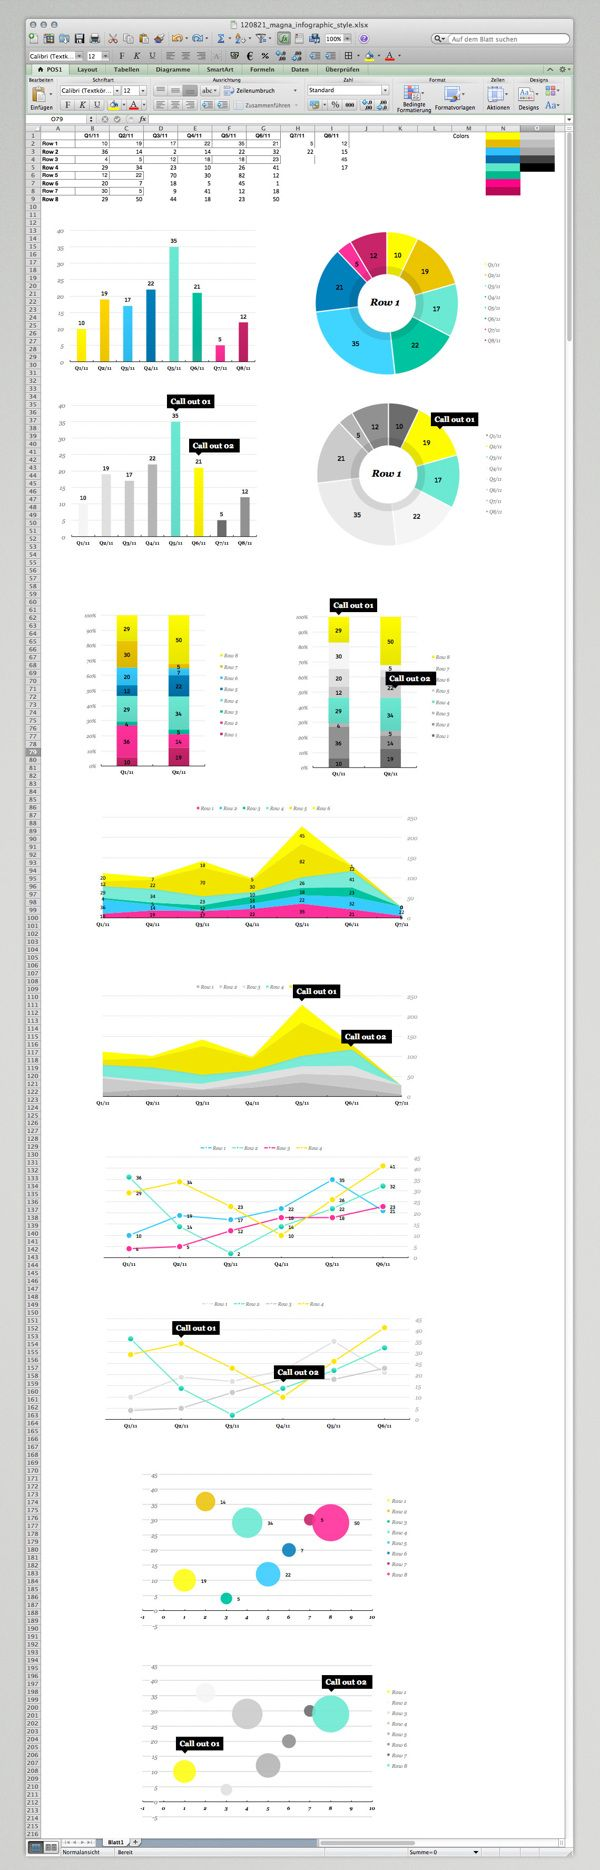 22 best Reporting ideas images on Pinterest | Dashboard design ...